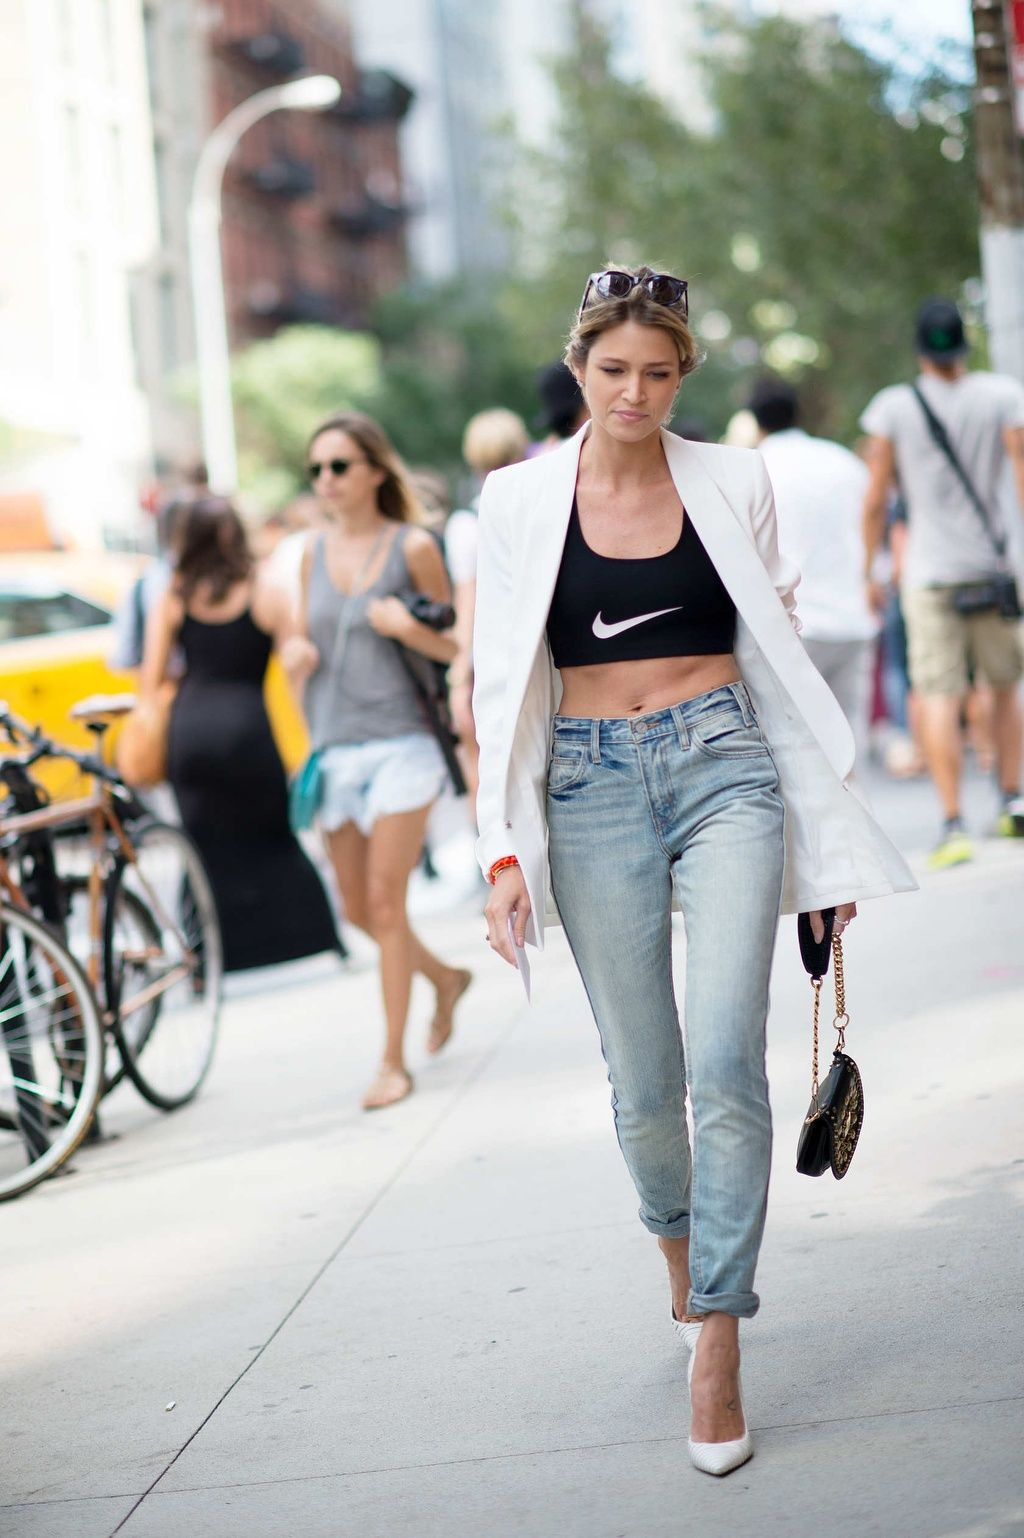 NYFW Flex Zone (With images) Fashion, Street style